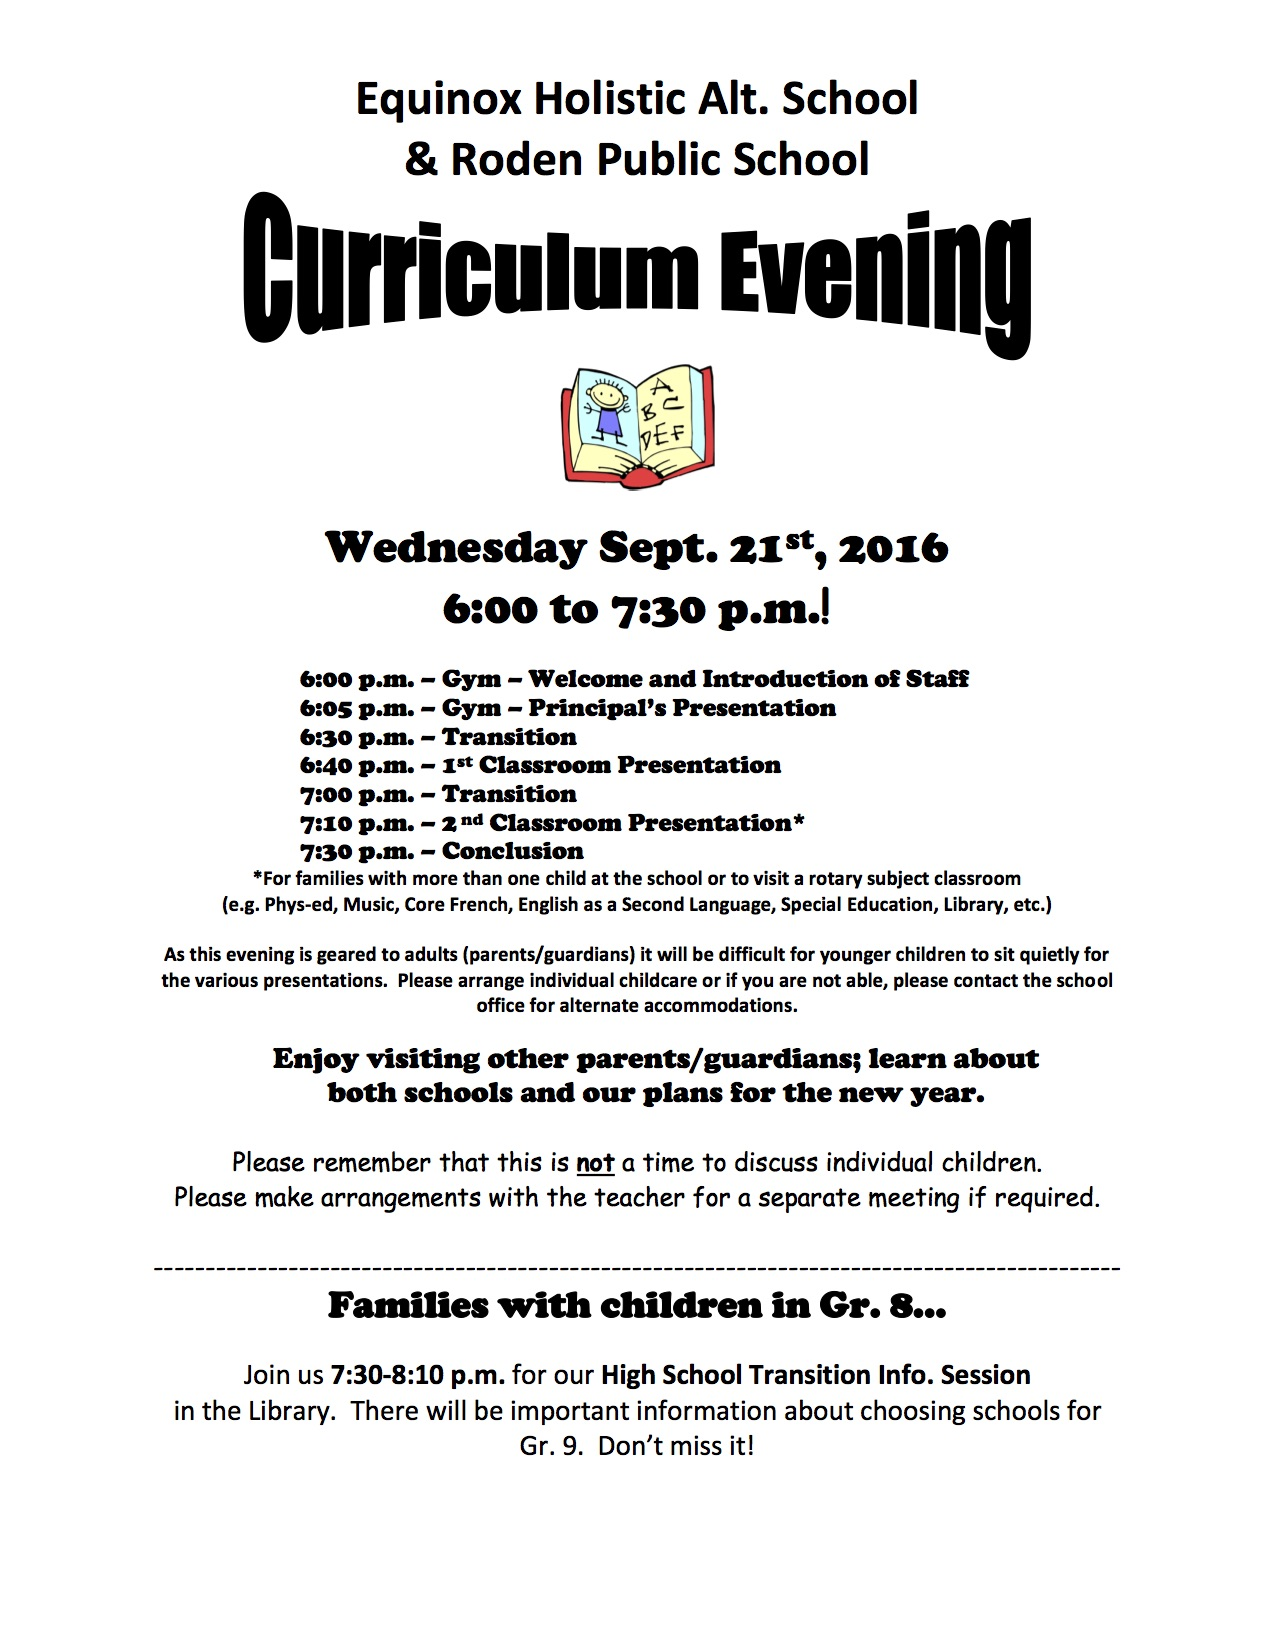 Curriculum Evening Flyer 2016